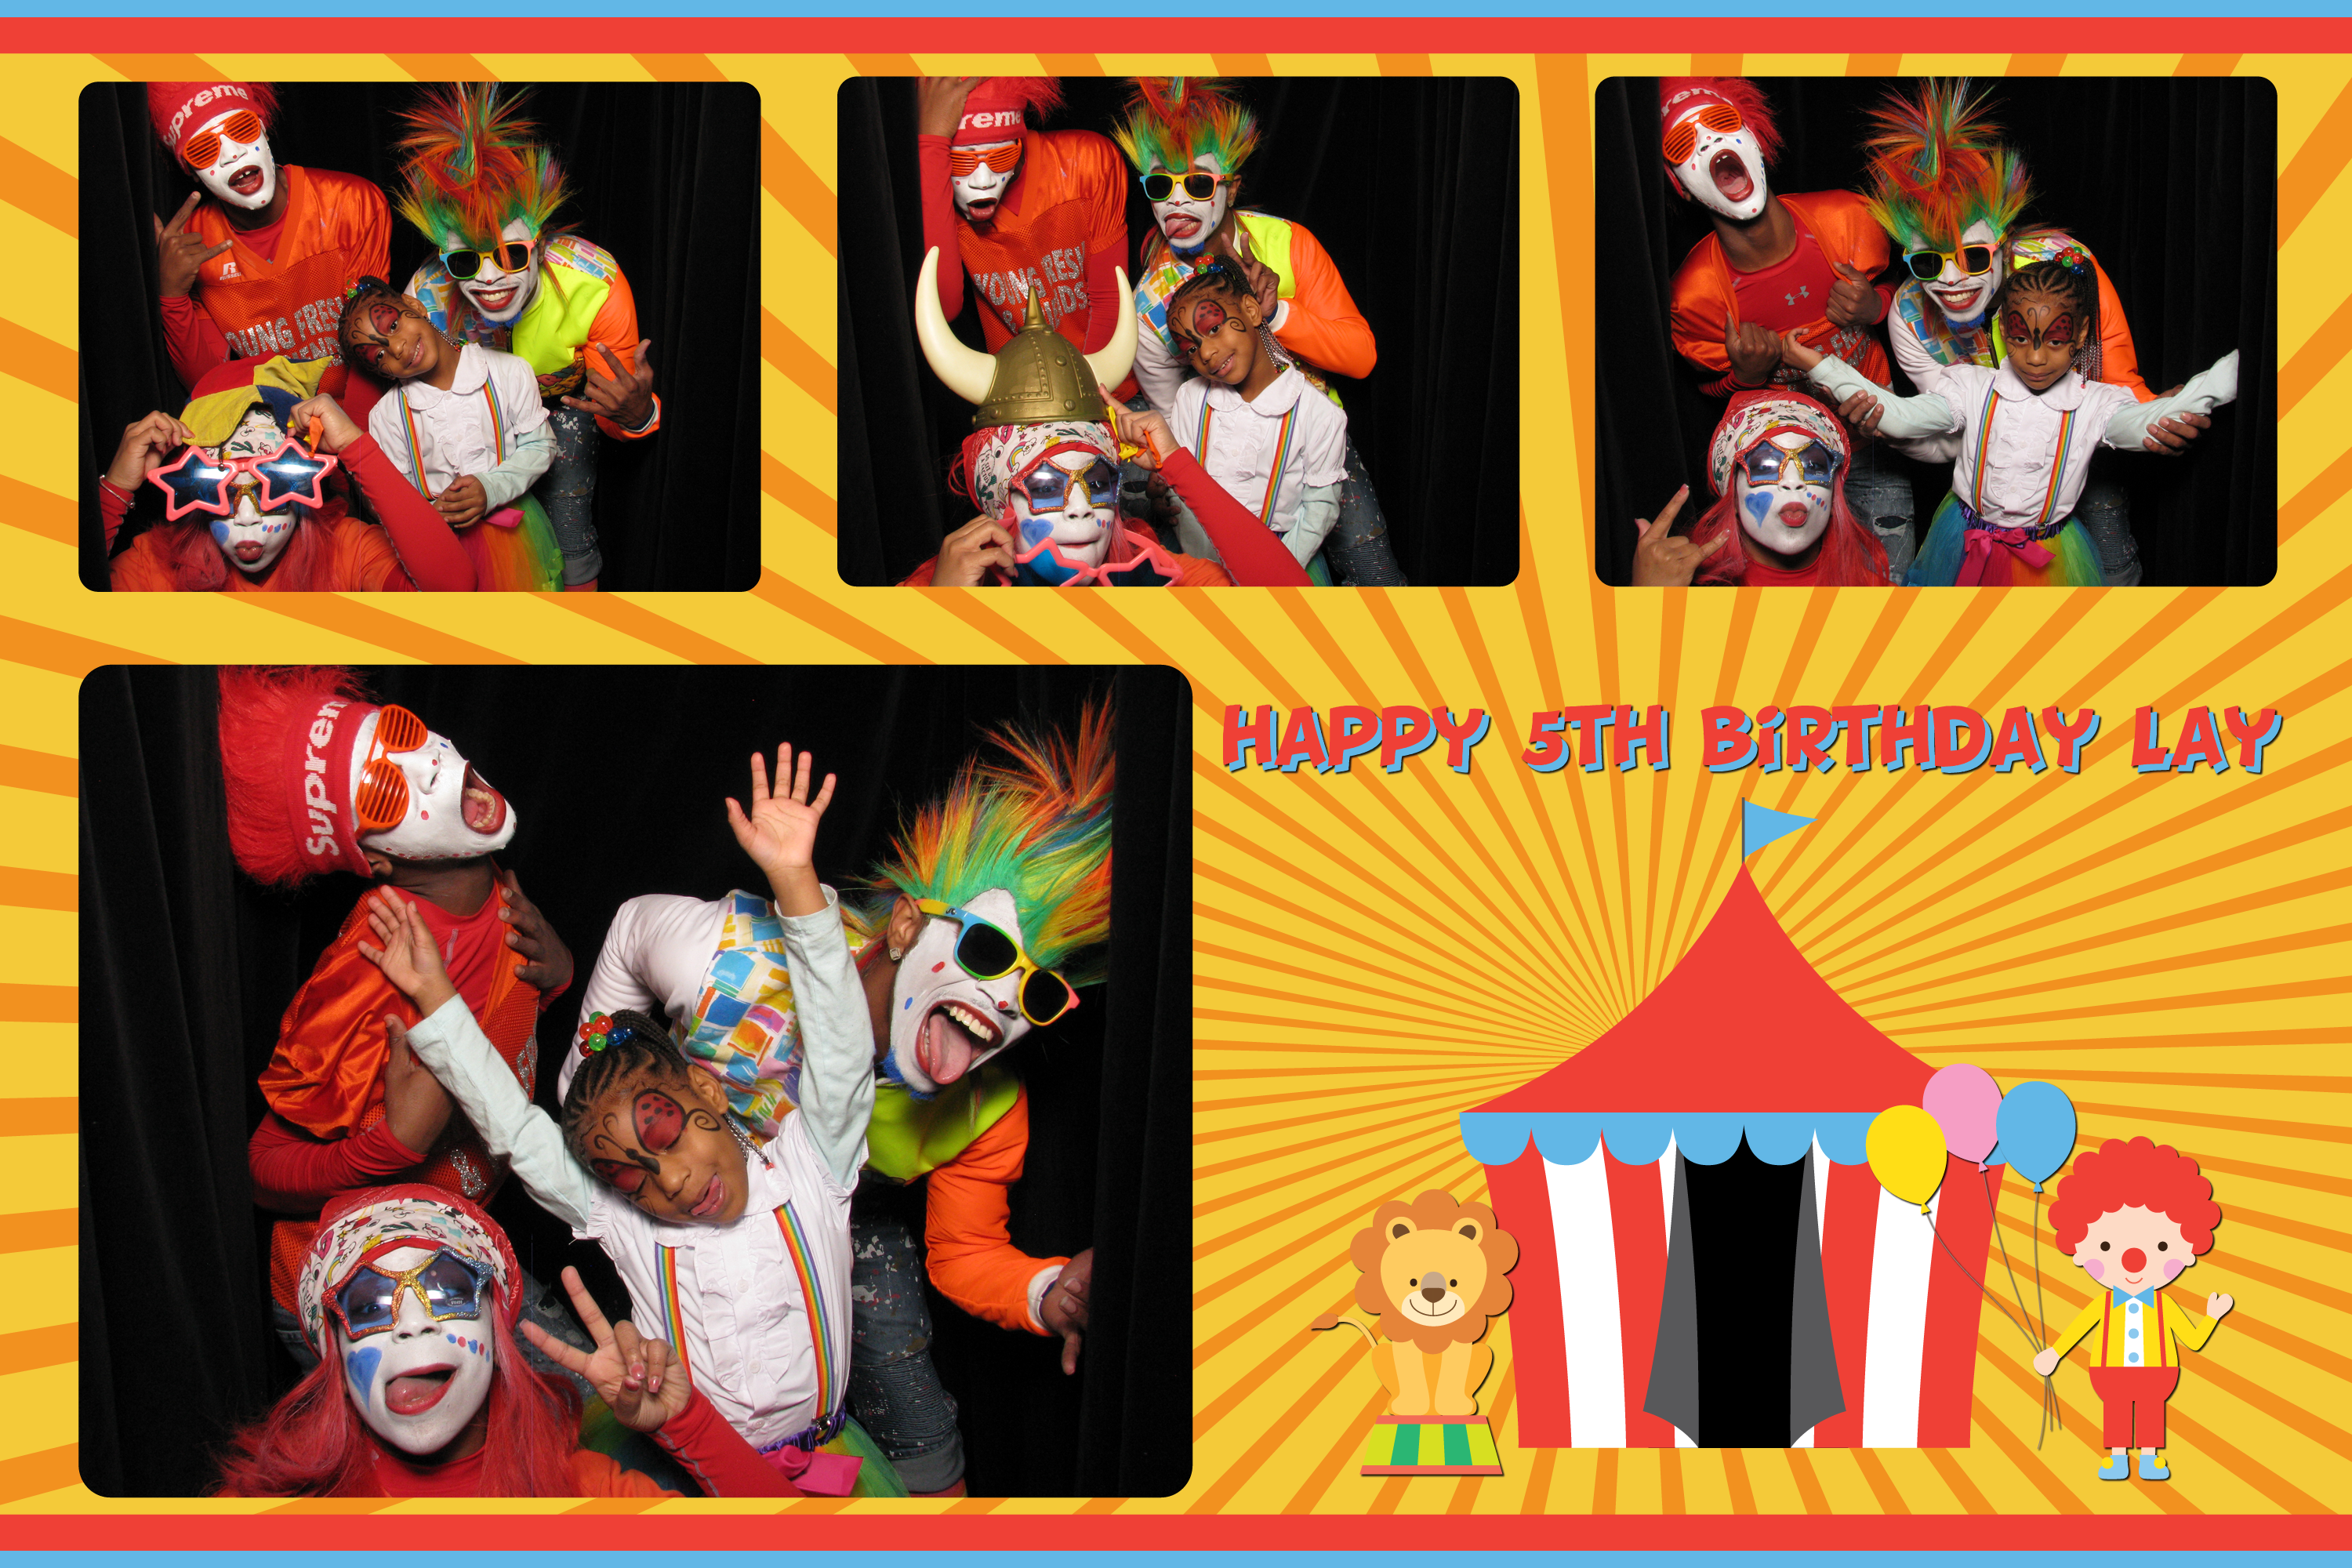 5f2c1a16e The party had a circus theme and Time to Play Party Rentals provided a  bounce ...